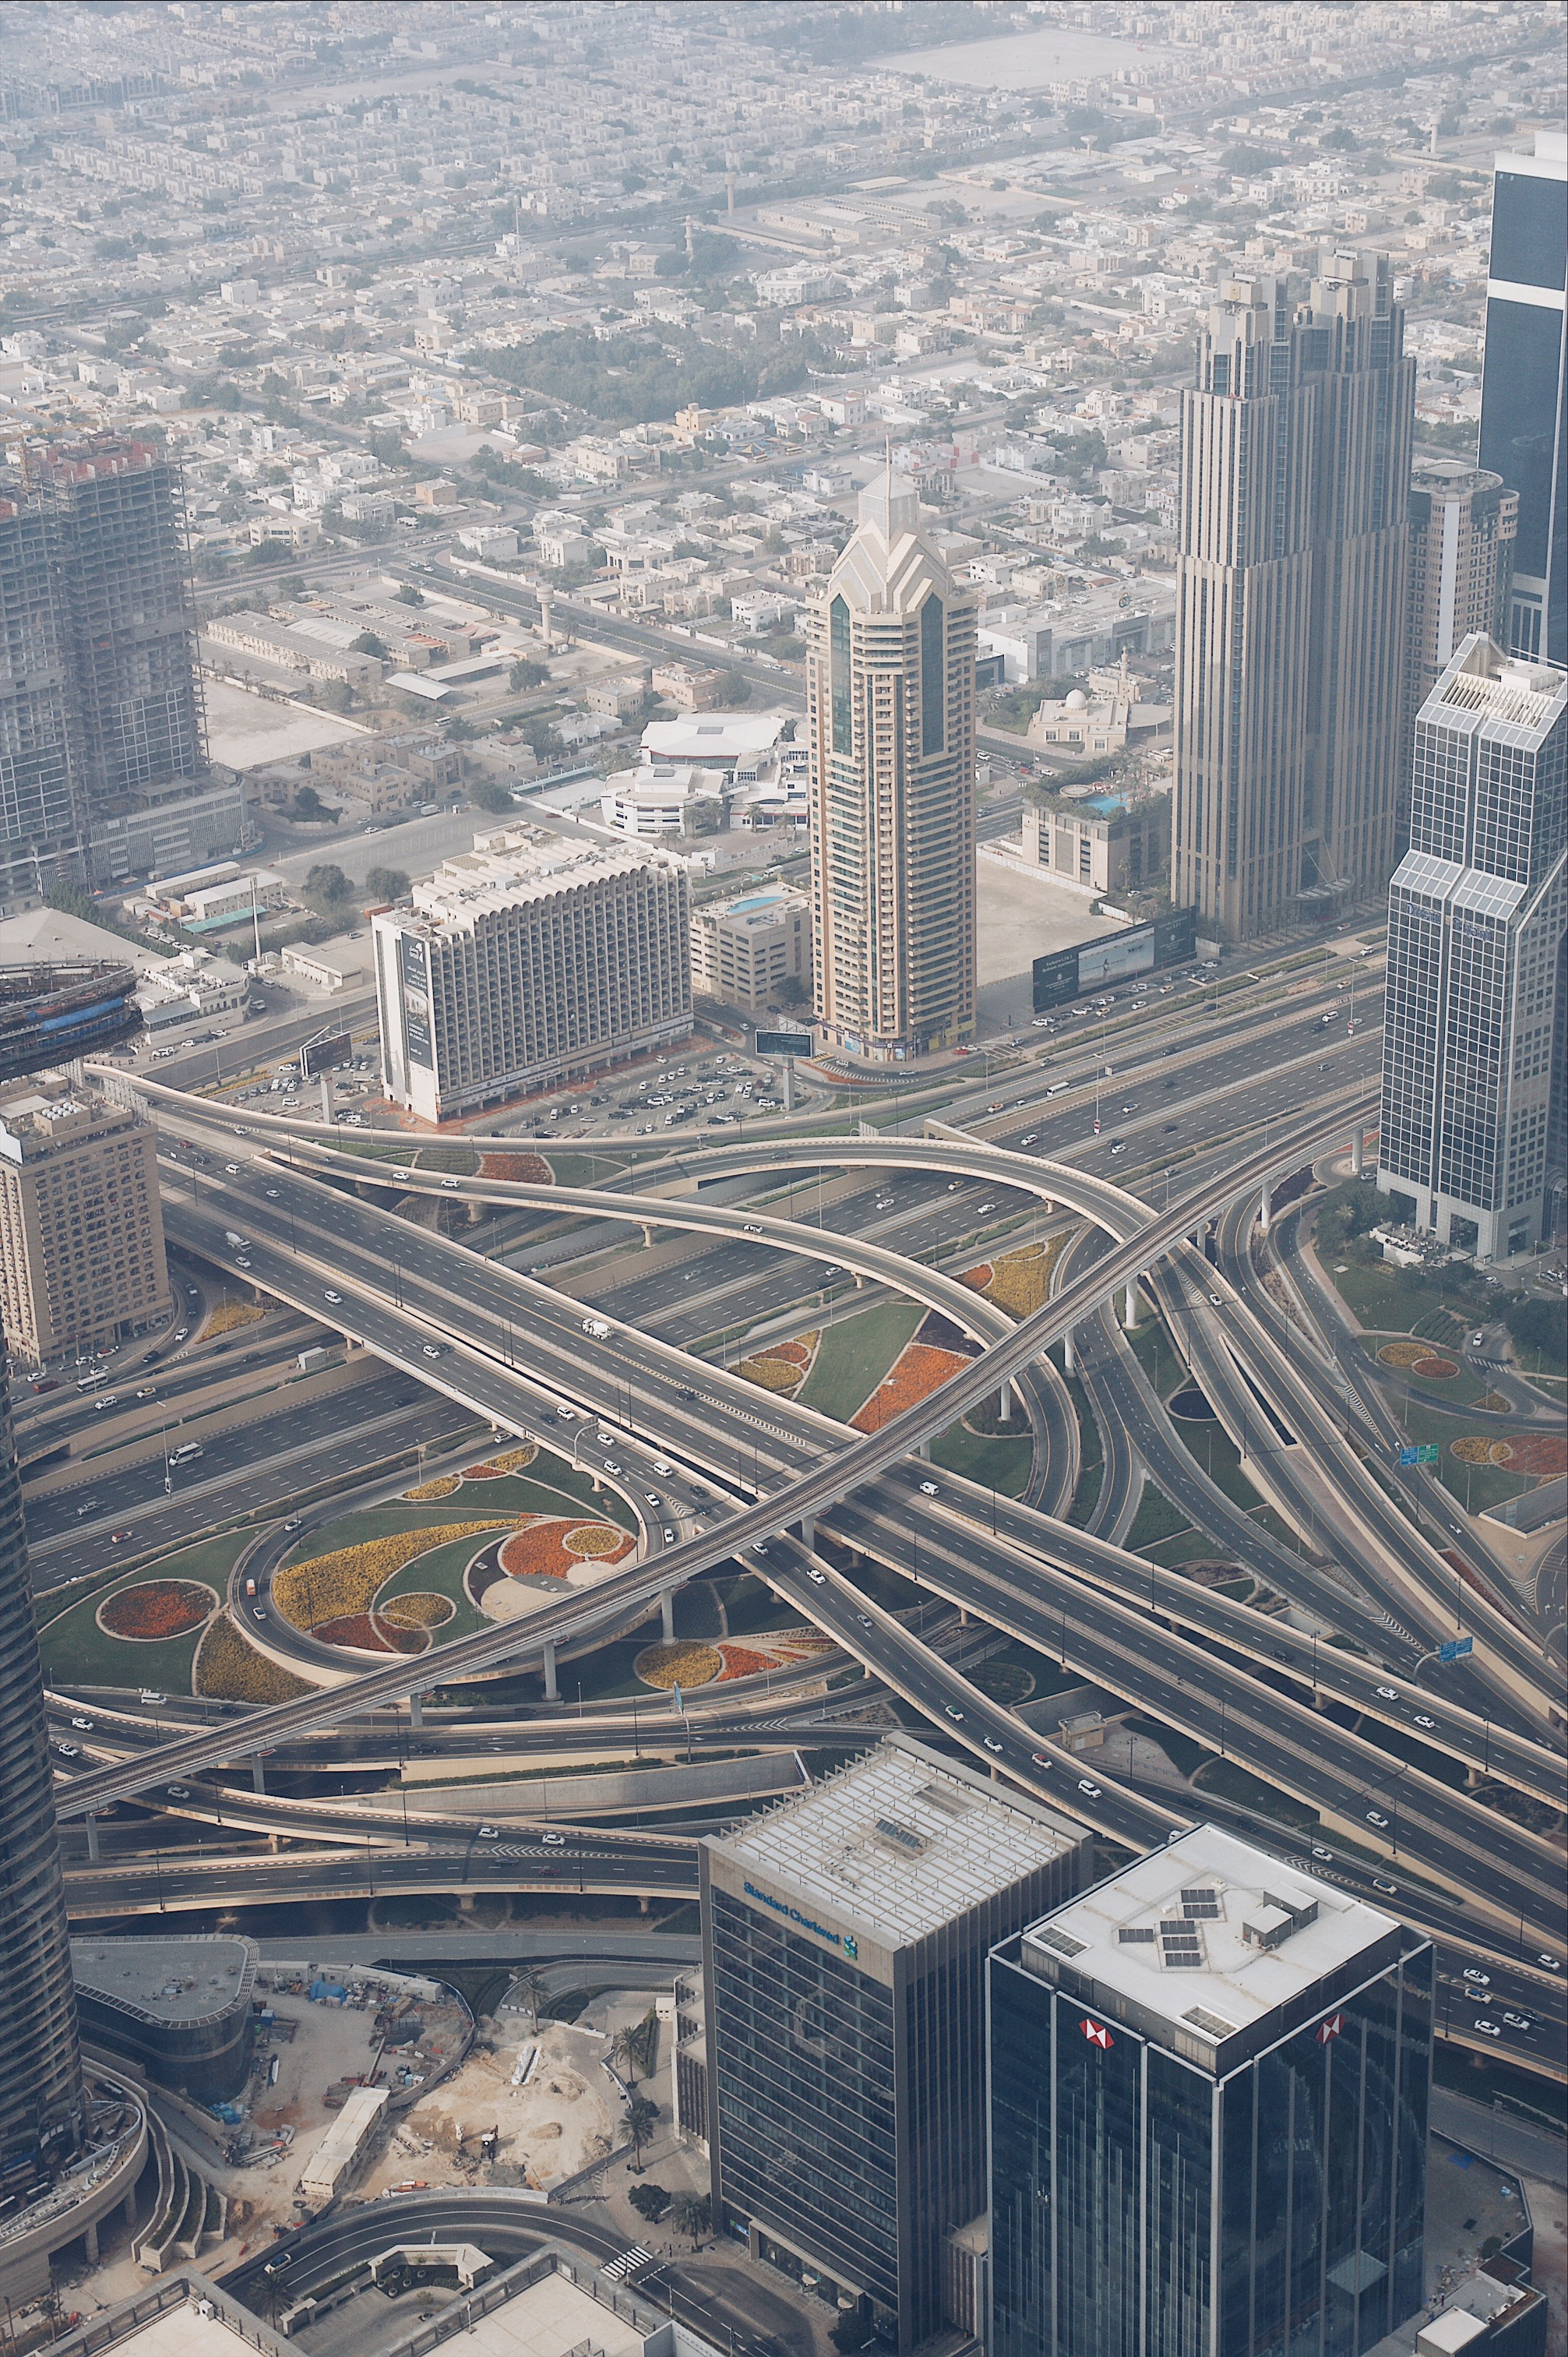 Dubai streets from above